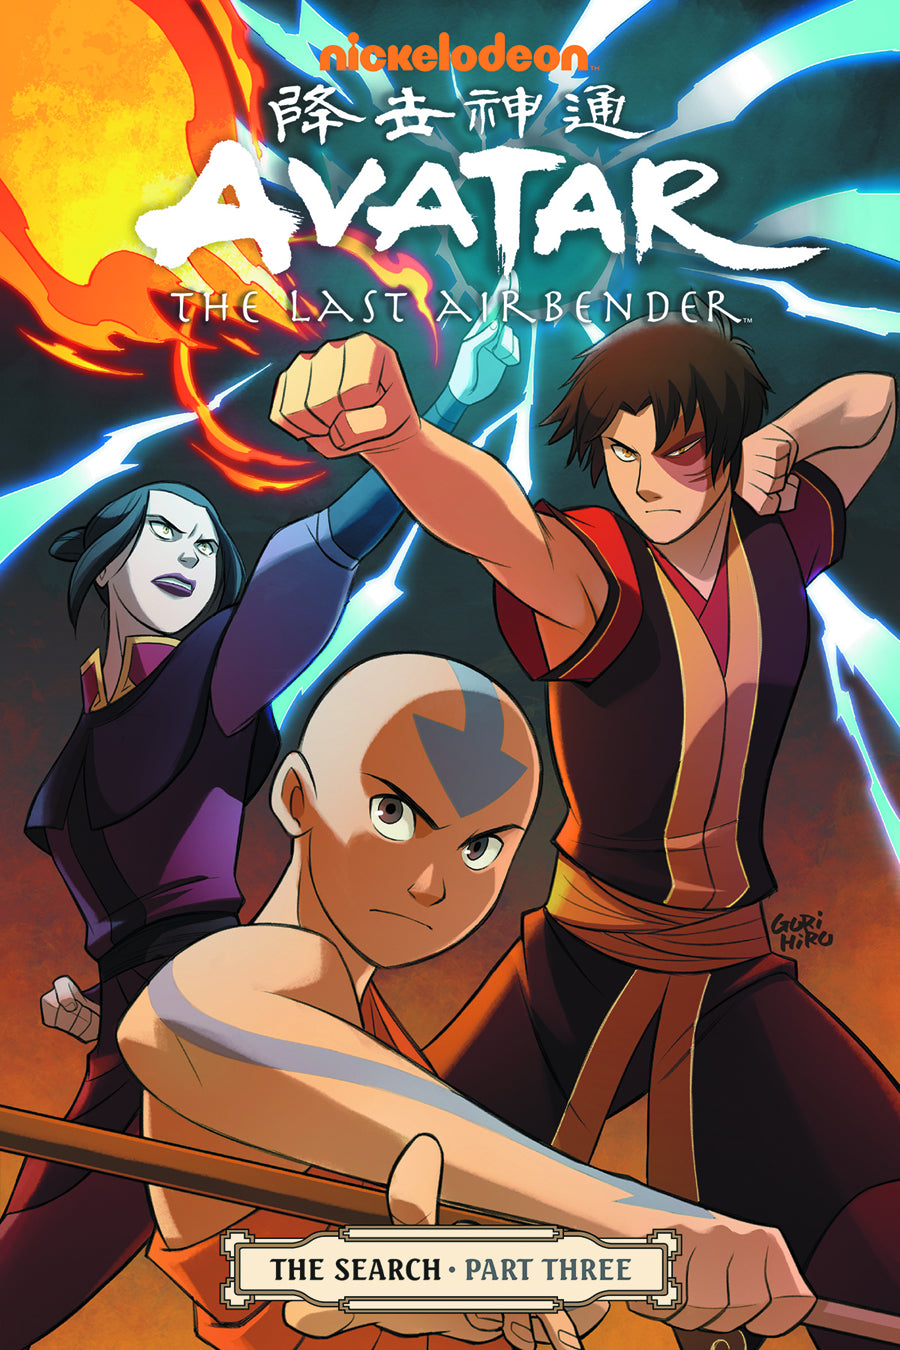 AVATAR LAST AIRBENDER TP VOL 06 SEARCH PART 3 (C: 0-1-2)